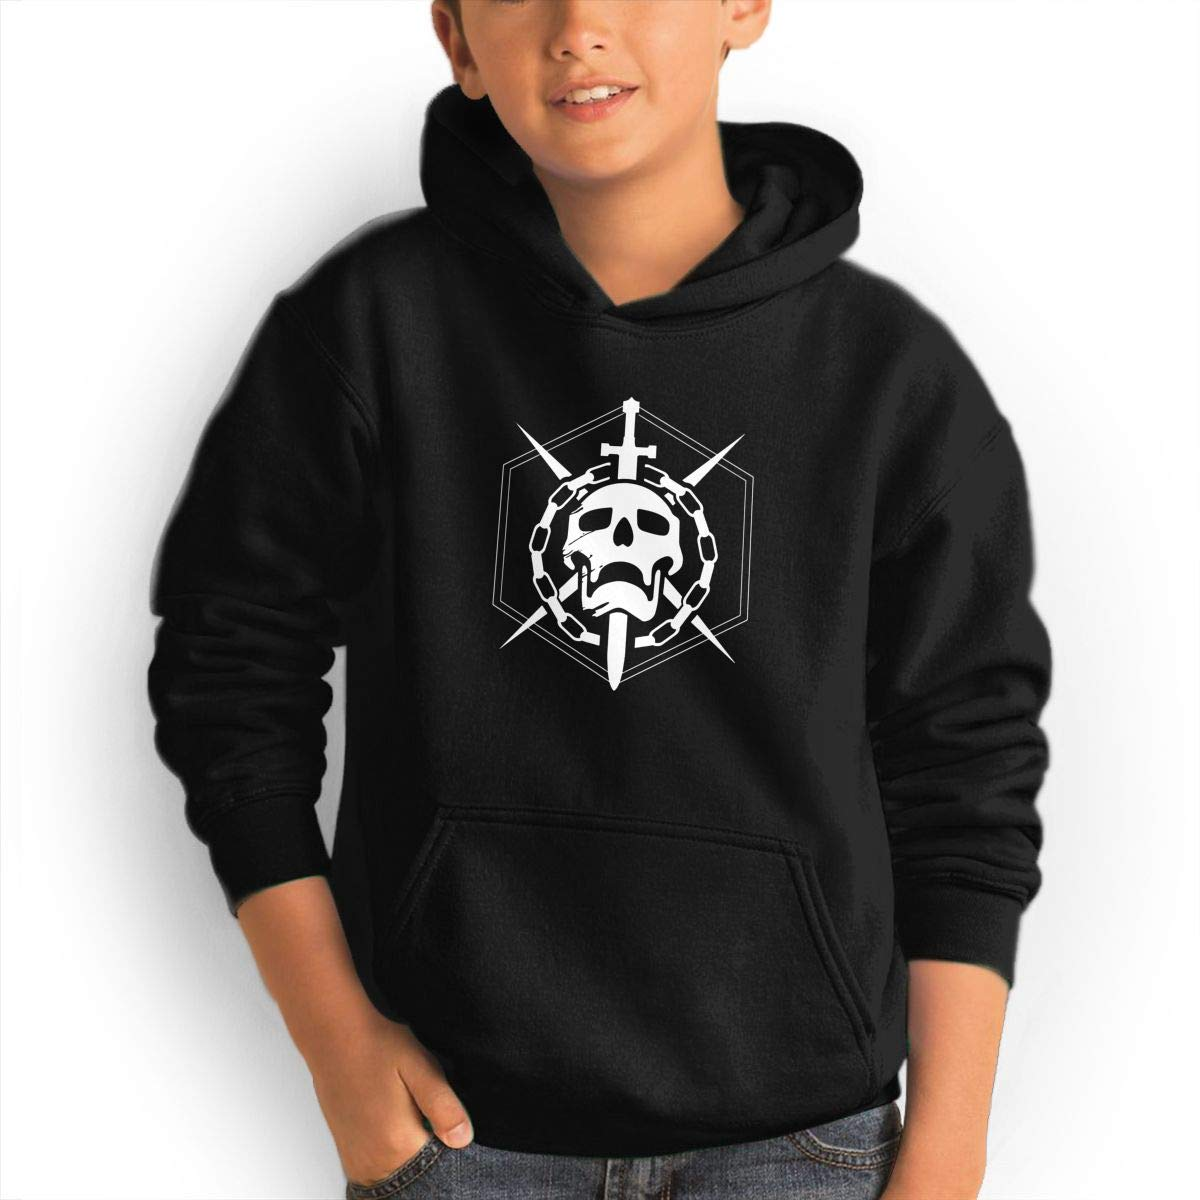 Teen S Destiny Game Raid Logo Hooded Cool Aesthetic Pullover For B Shirts